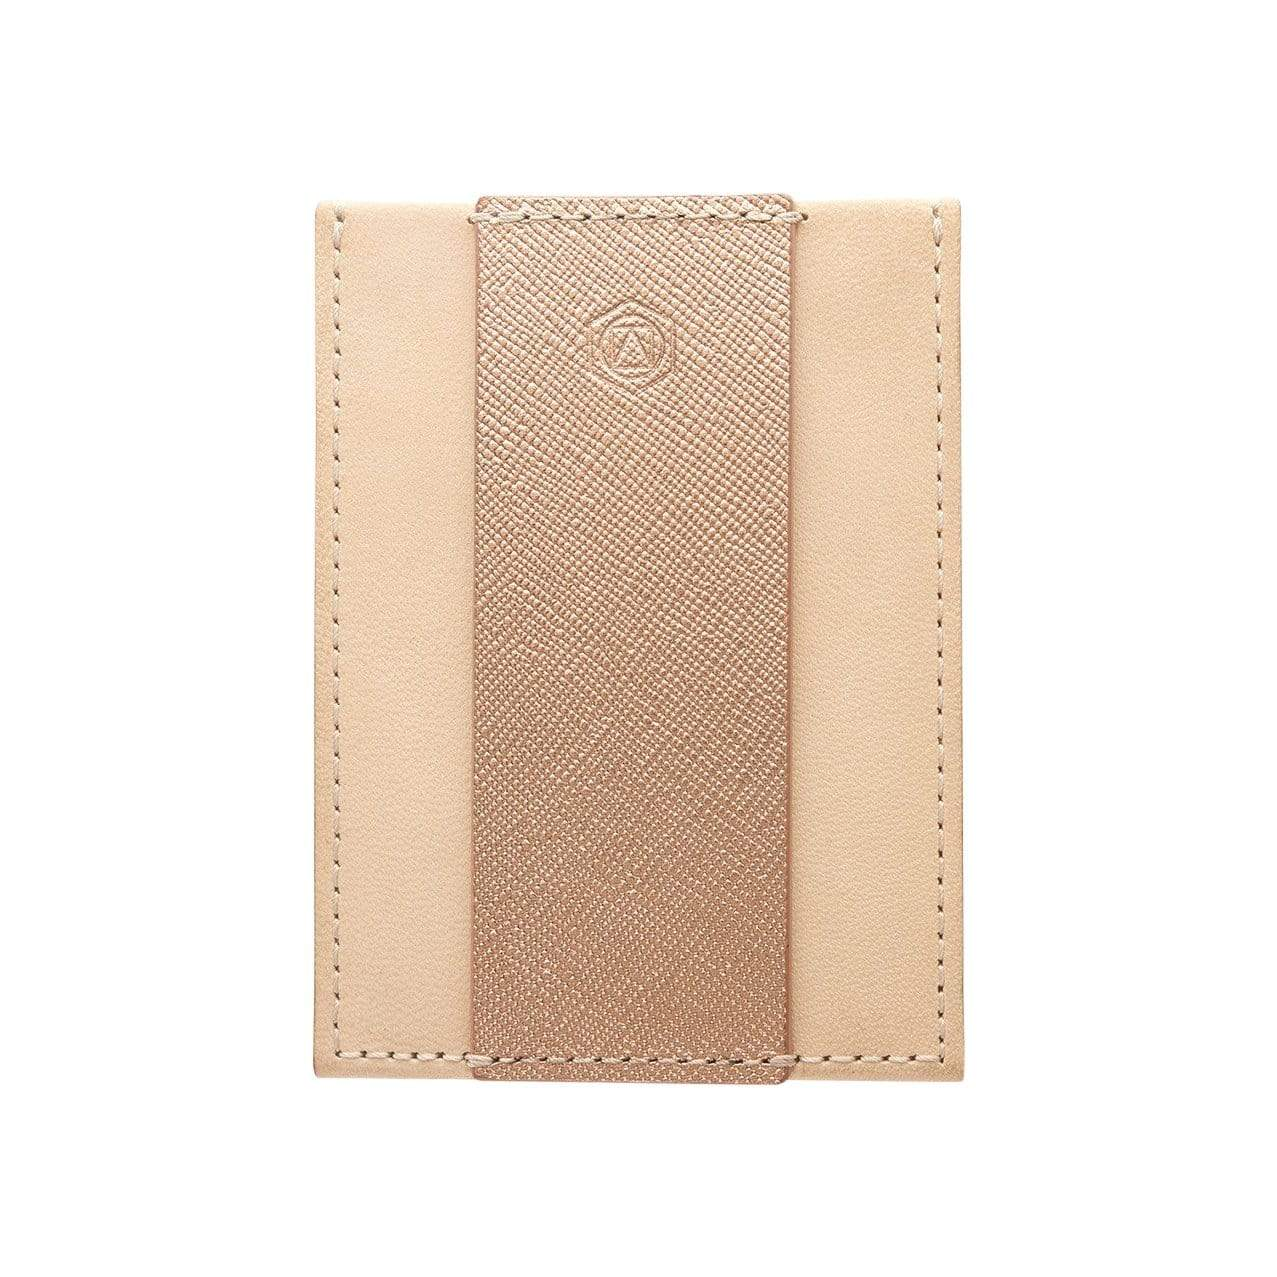 CAPSULE Wallets + Card Cases Minimalist Desertrose Slim Wallet